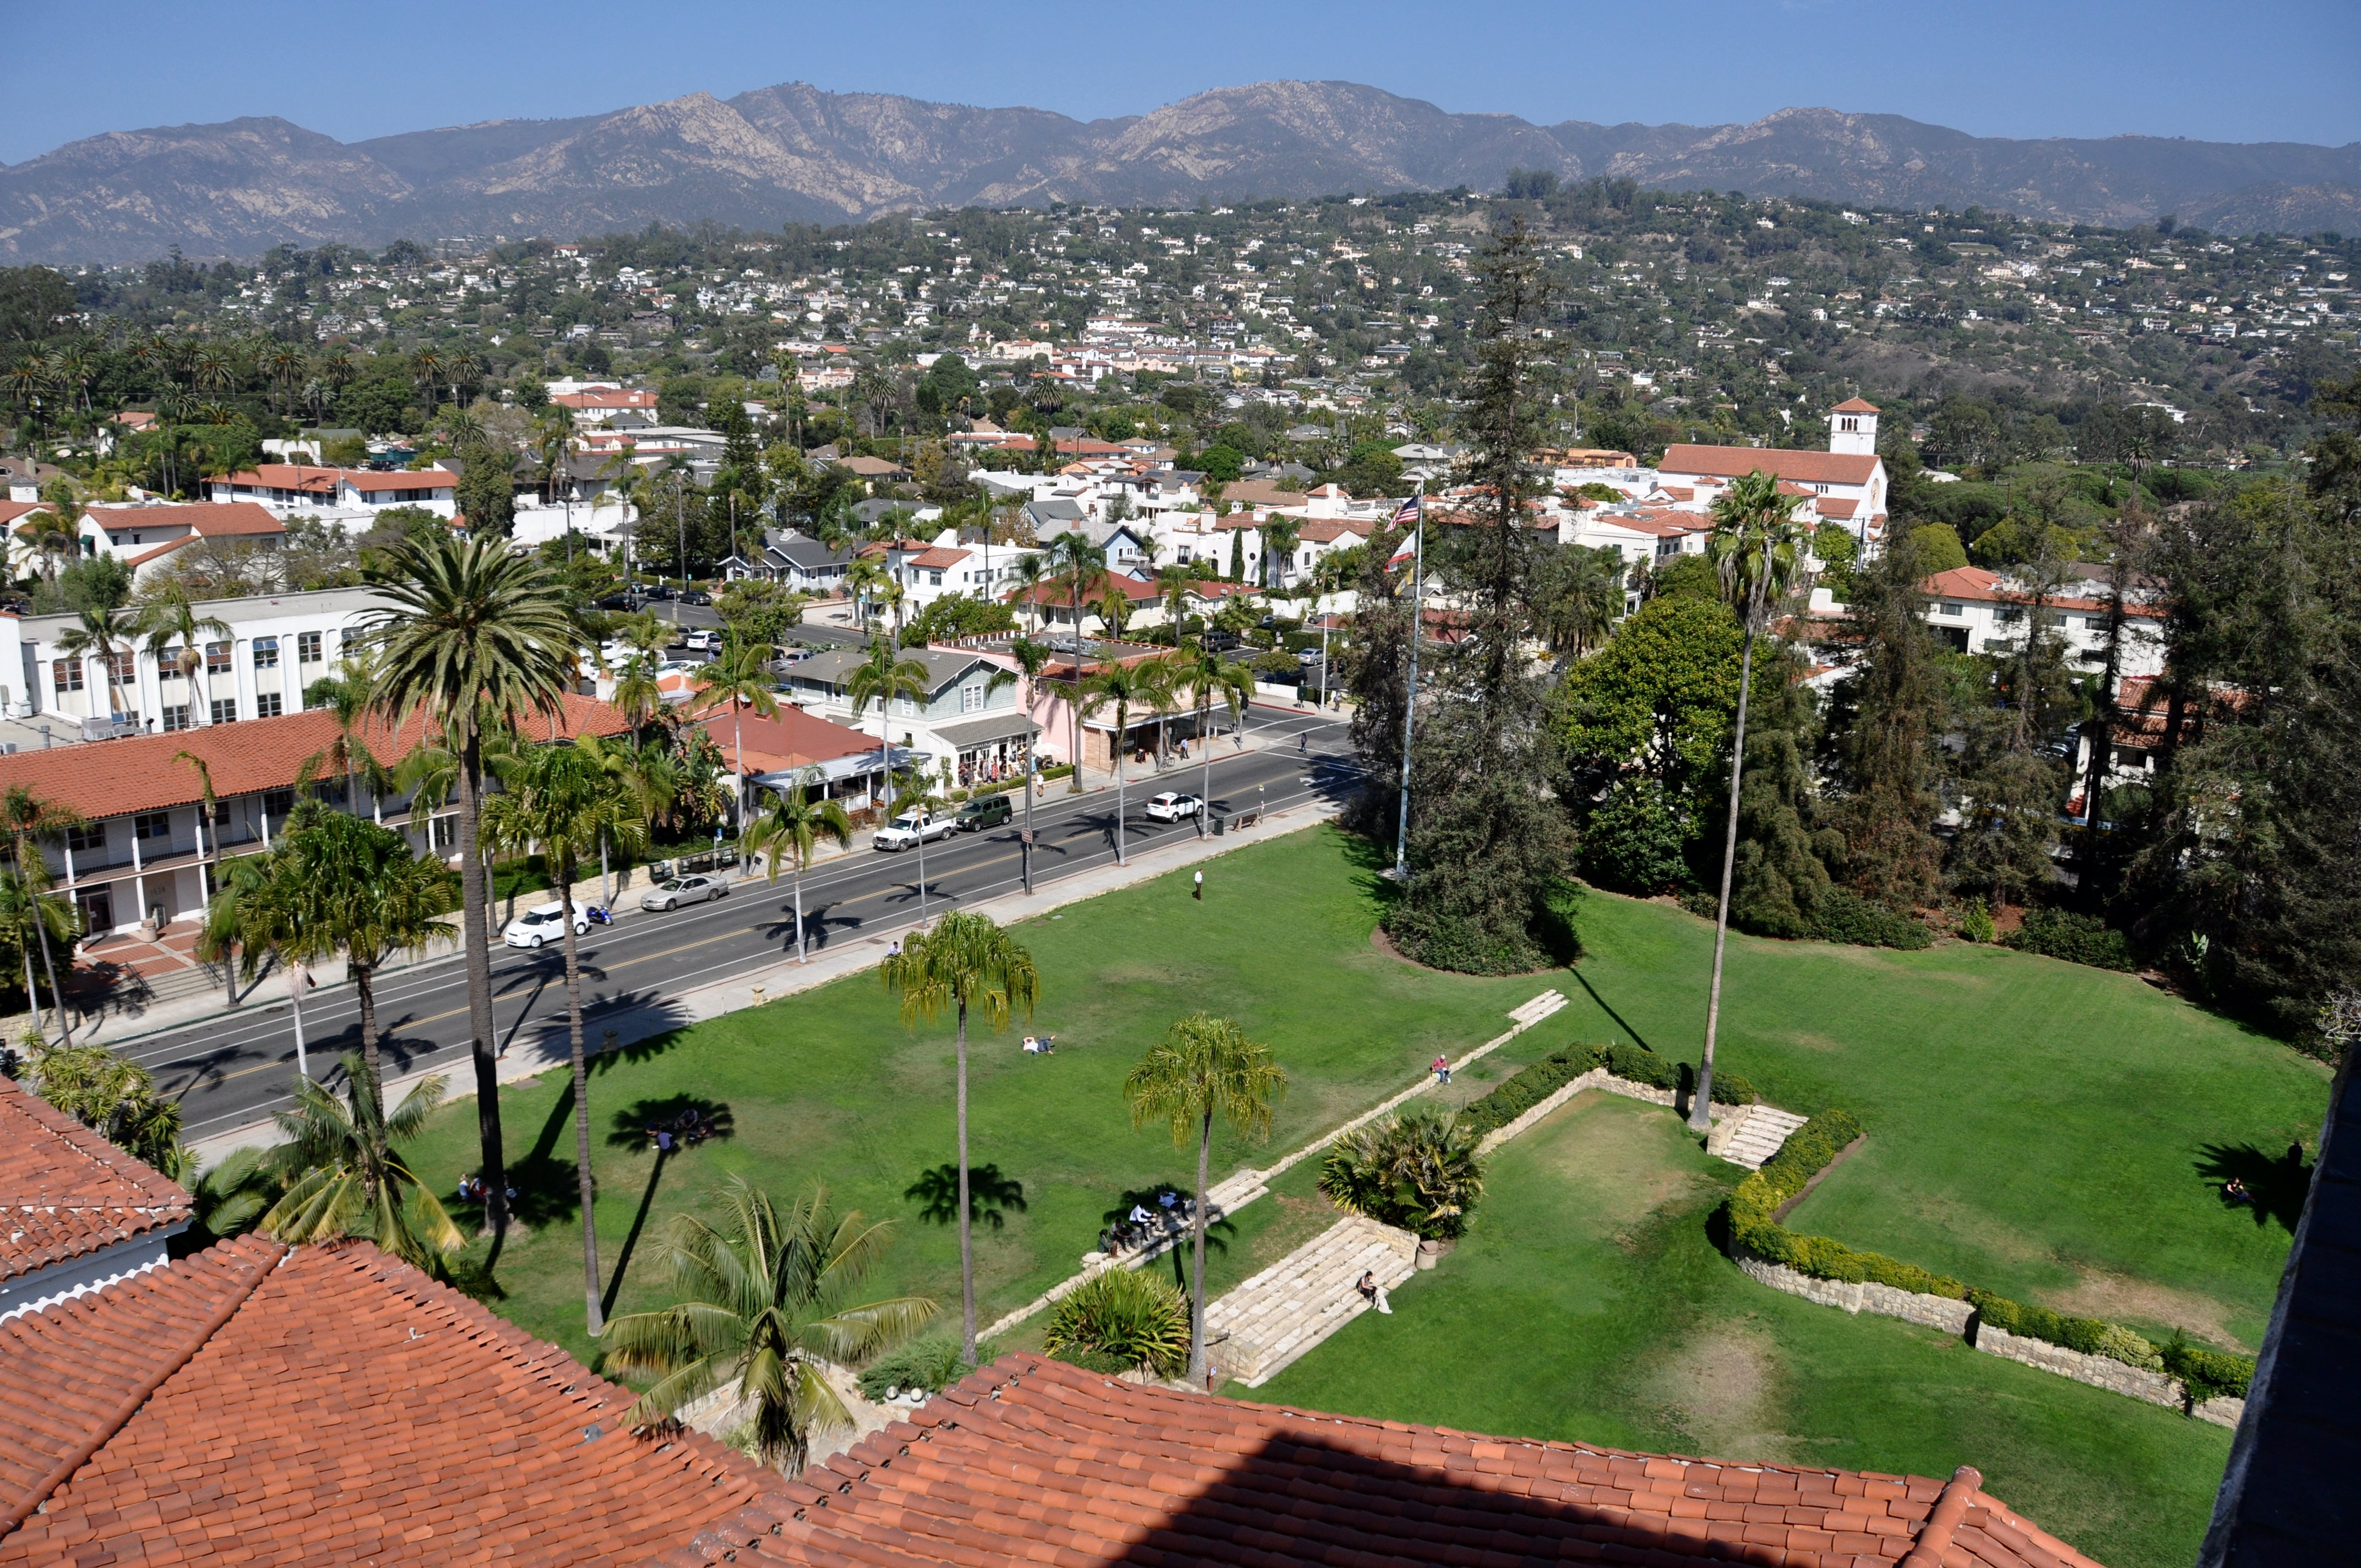 Santa Barbara from the courthouse clock tower